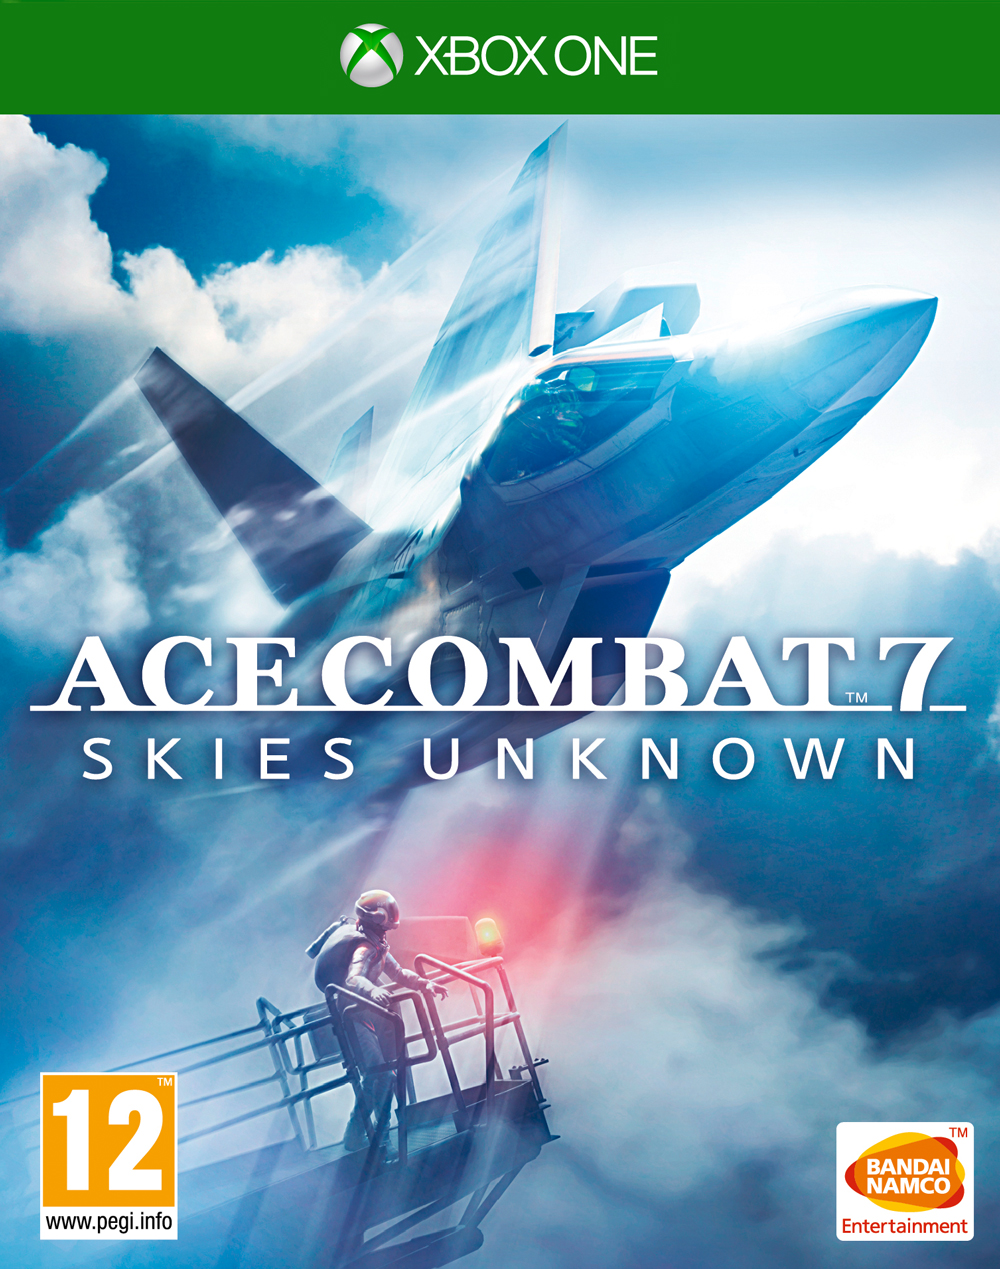 Ace Combat 7: Skies Unknown (XONE)